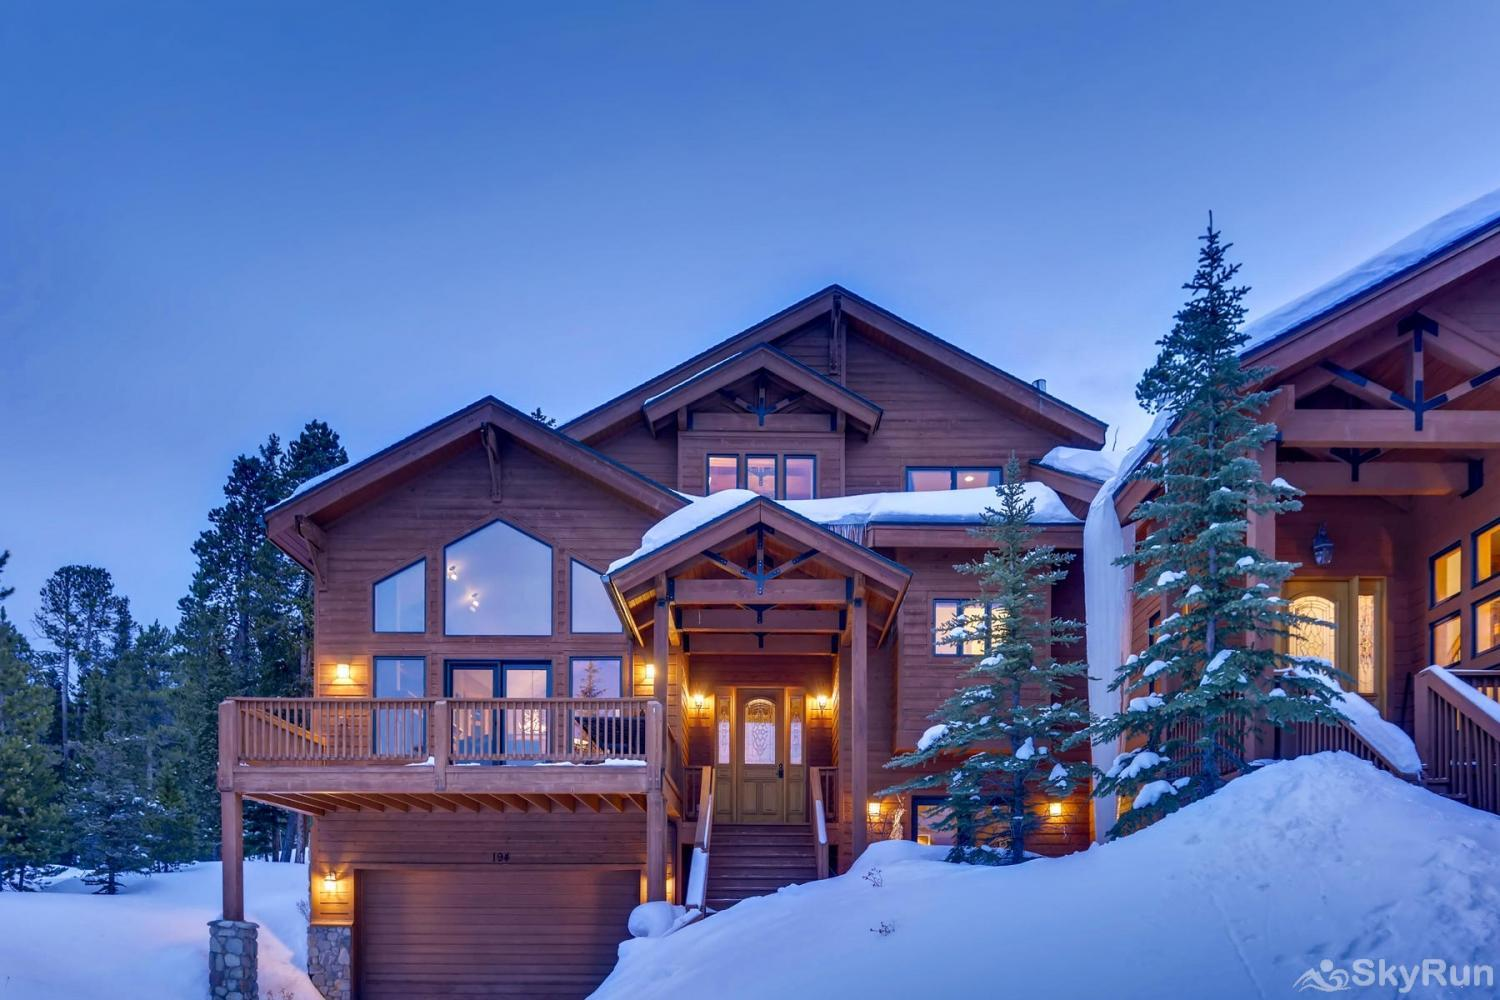 Nangle Woods Retreat Luxury vacation home in the Rocky Mountains